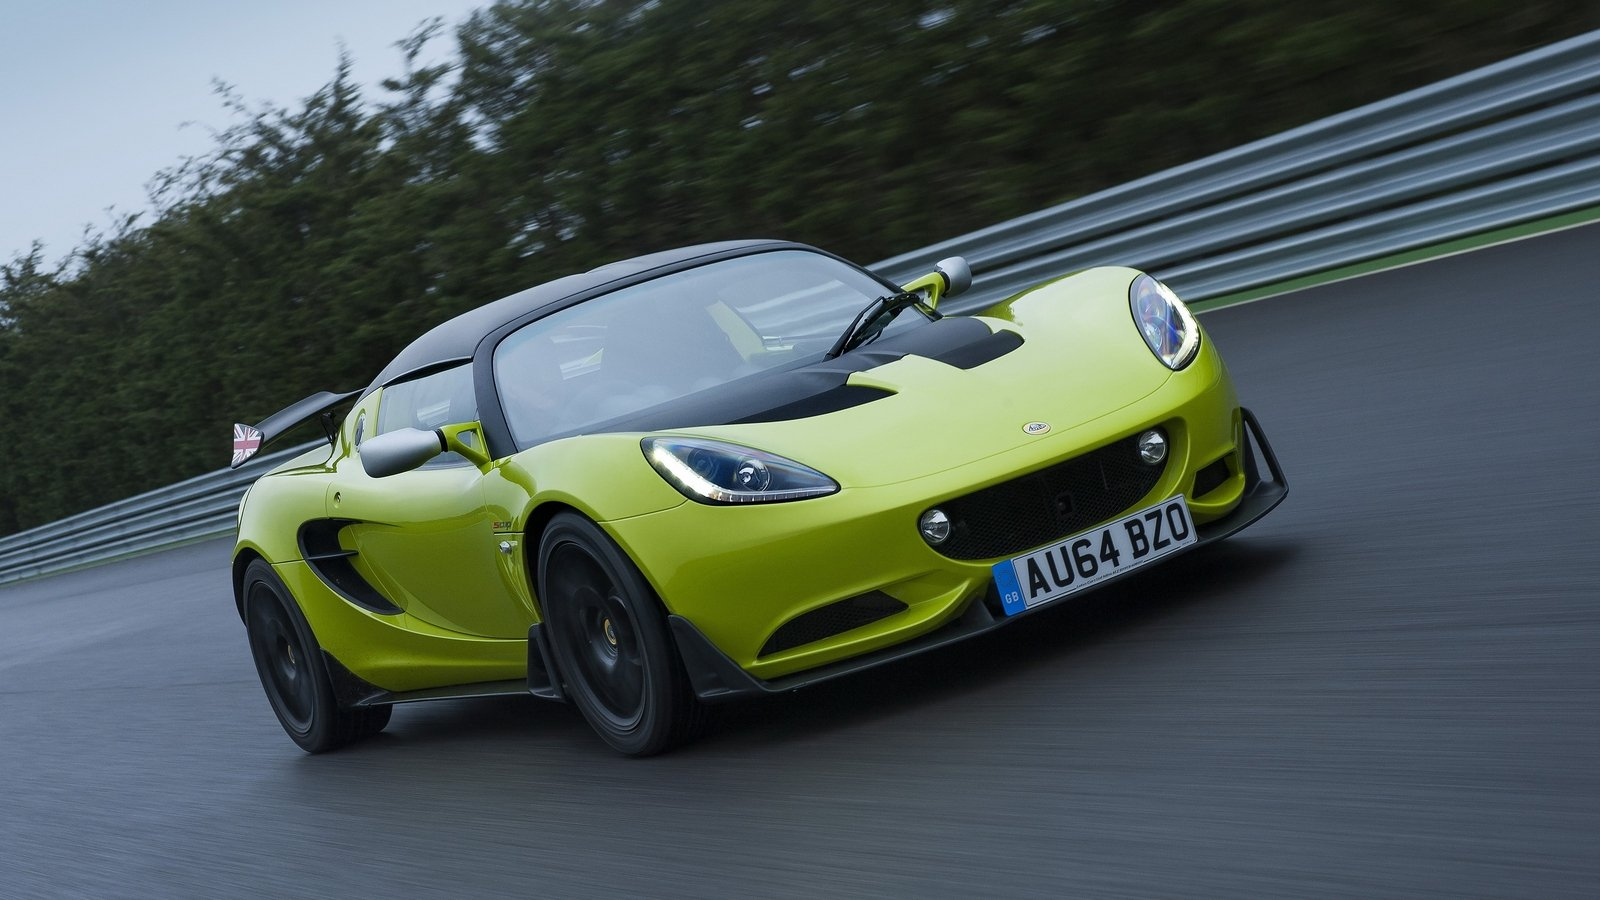 Lotus Sports Car >> Lotus Elise Will Return To US, But Not Before 2020 | Top Speed